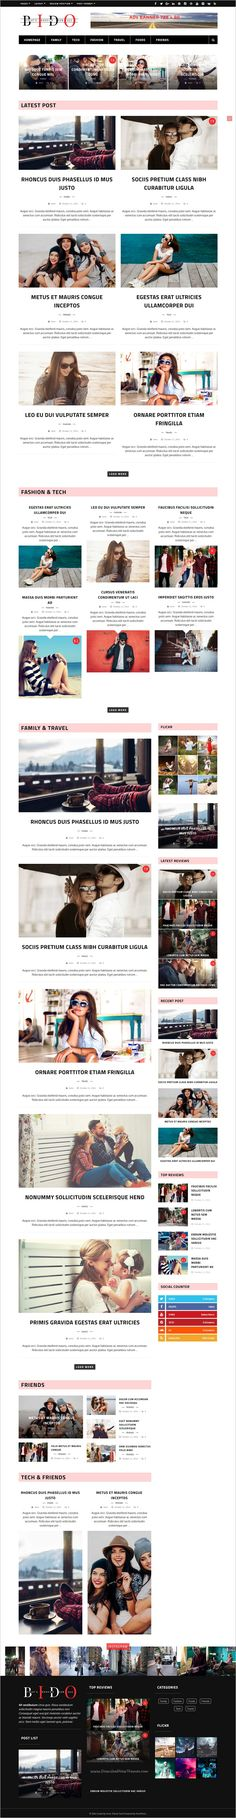 Bido is a premium modern and super flexible responsive 5in1 #WordPress theme for #magazine, #news or #blog websites download now➩ https://themeforest.net/item/bido-wordpress-blog-magazine-theme/18701517?ref=Datasata